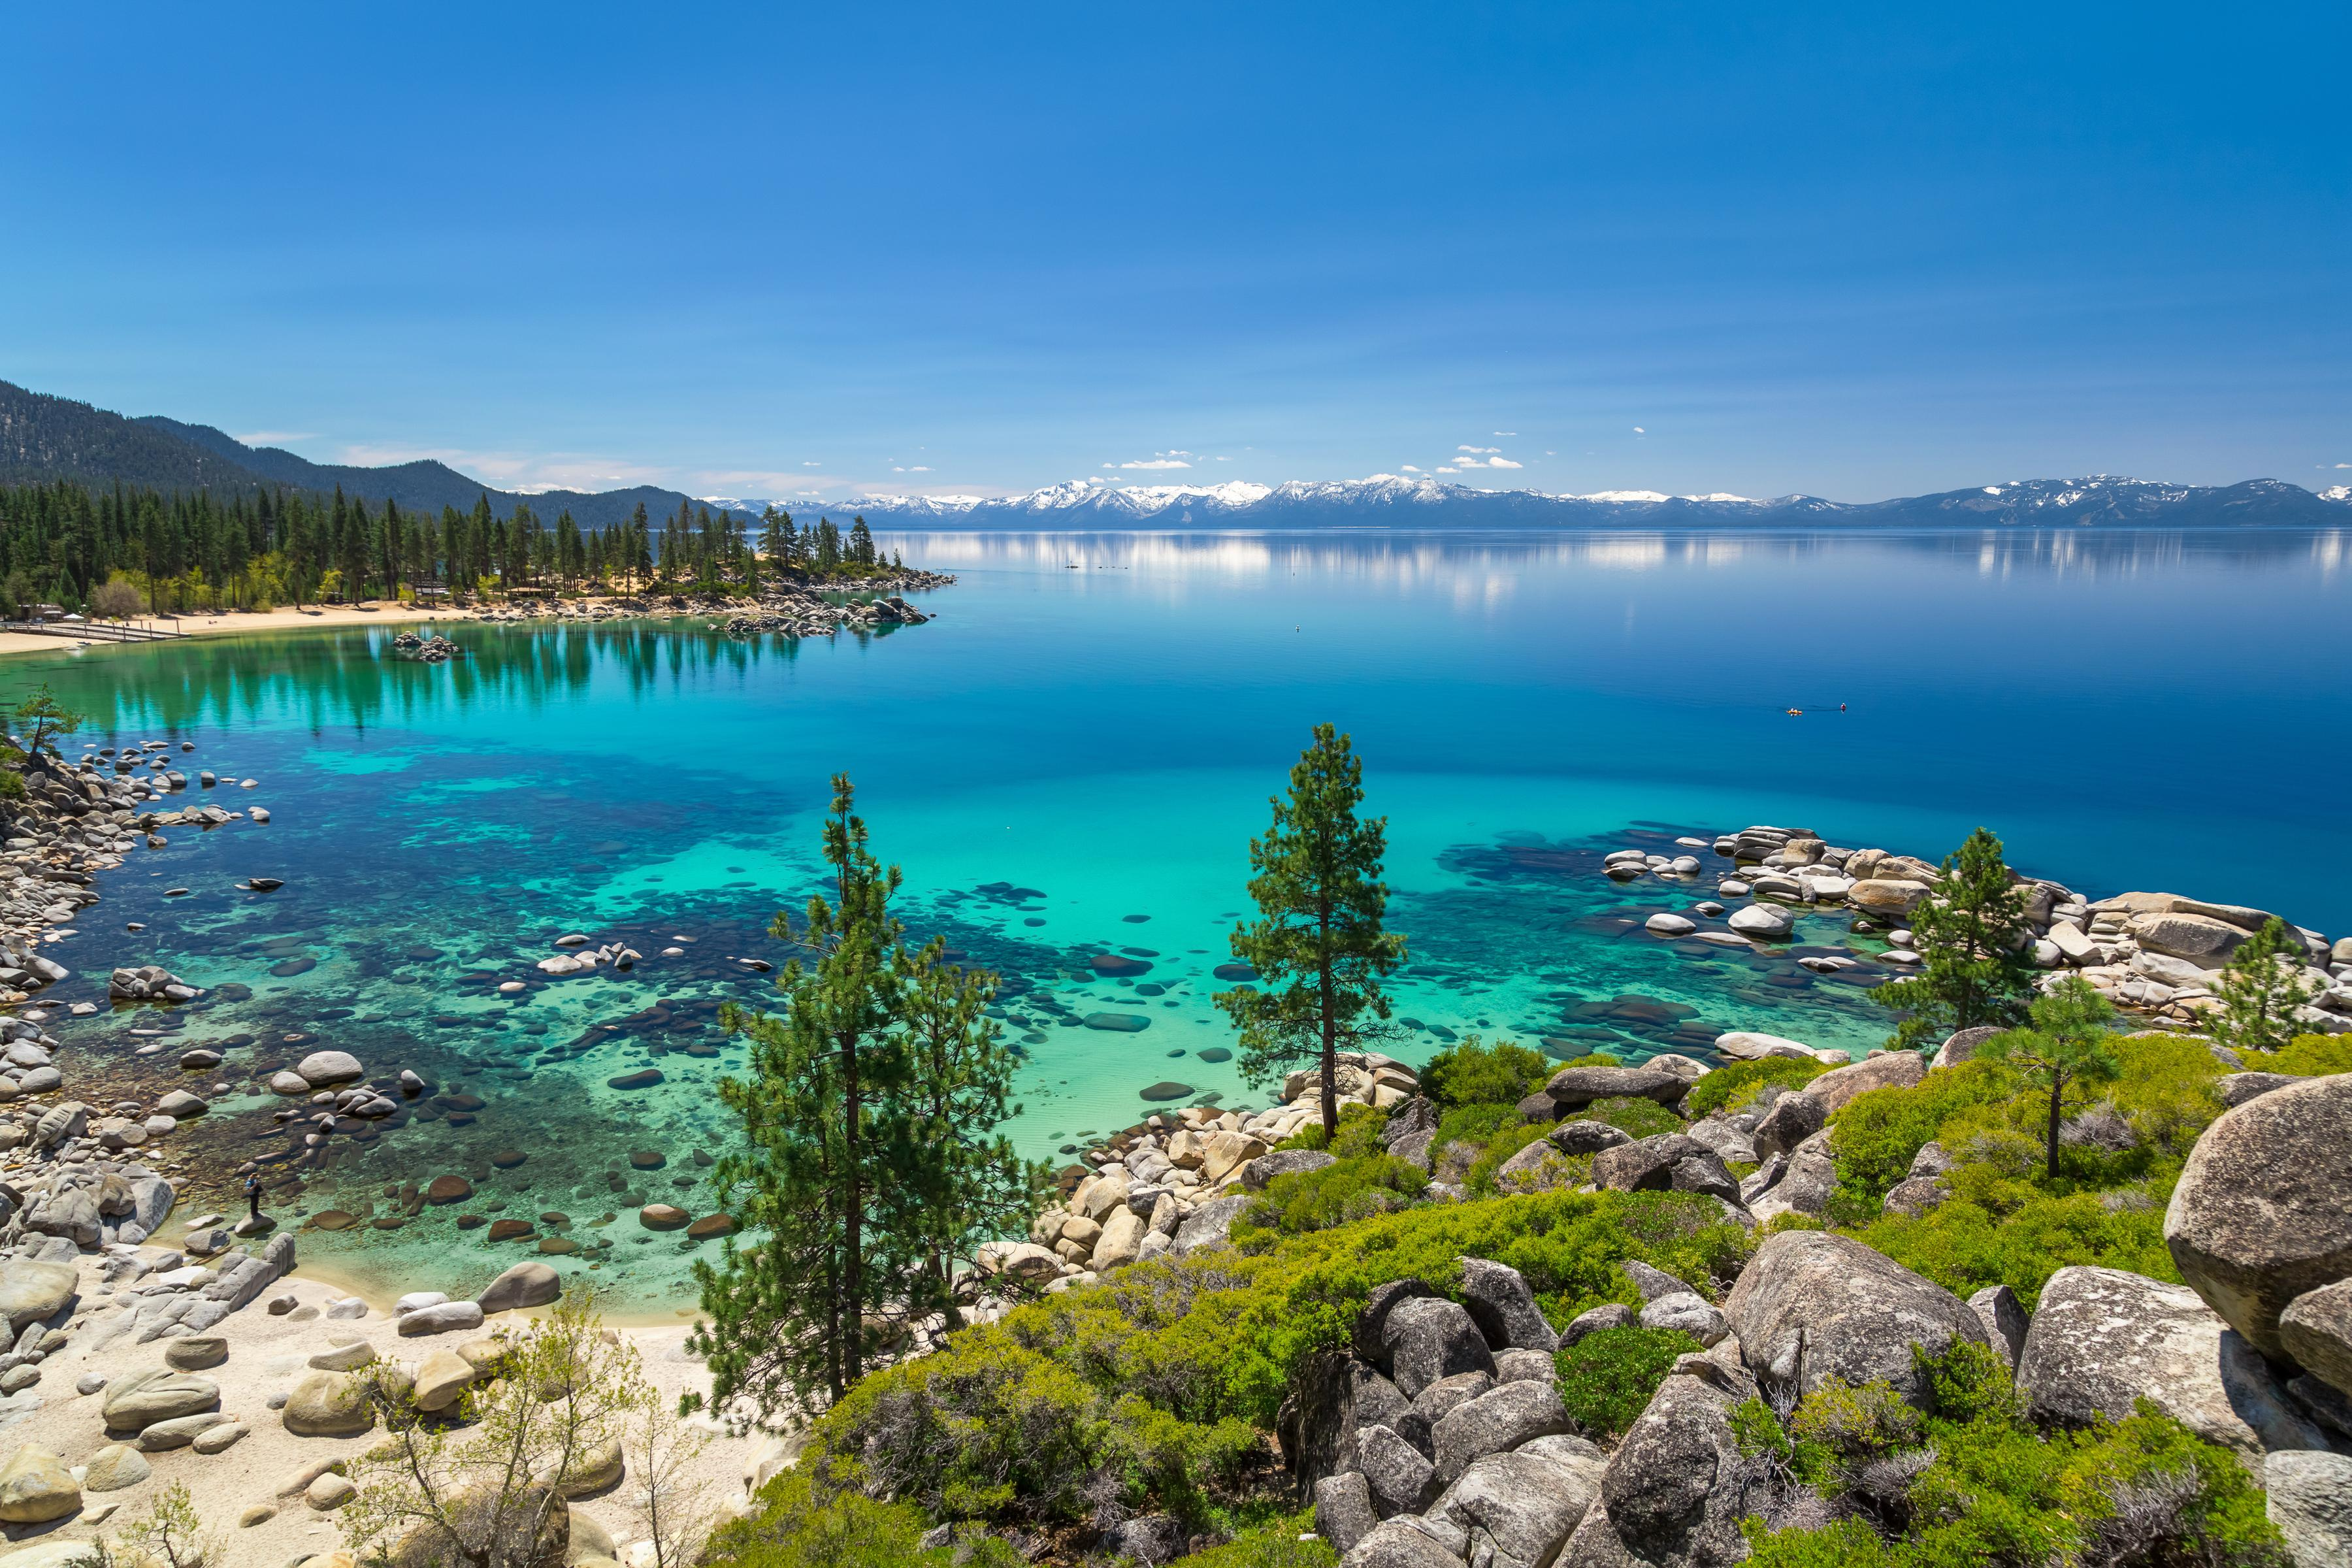 Take a drive around the lake to take in vistas of the Tahoe's stunning shoreline.